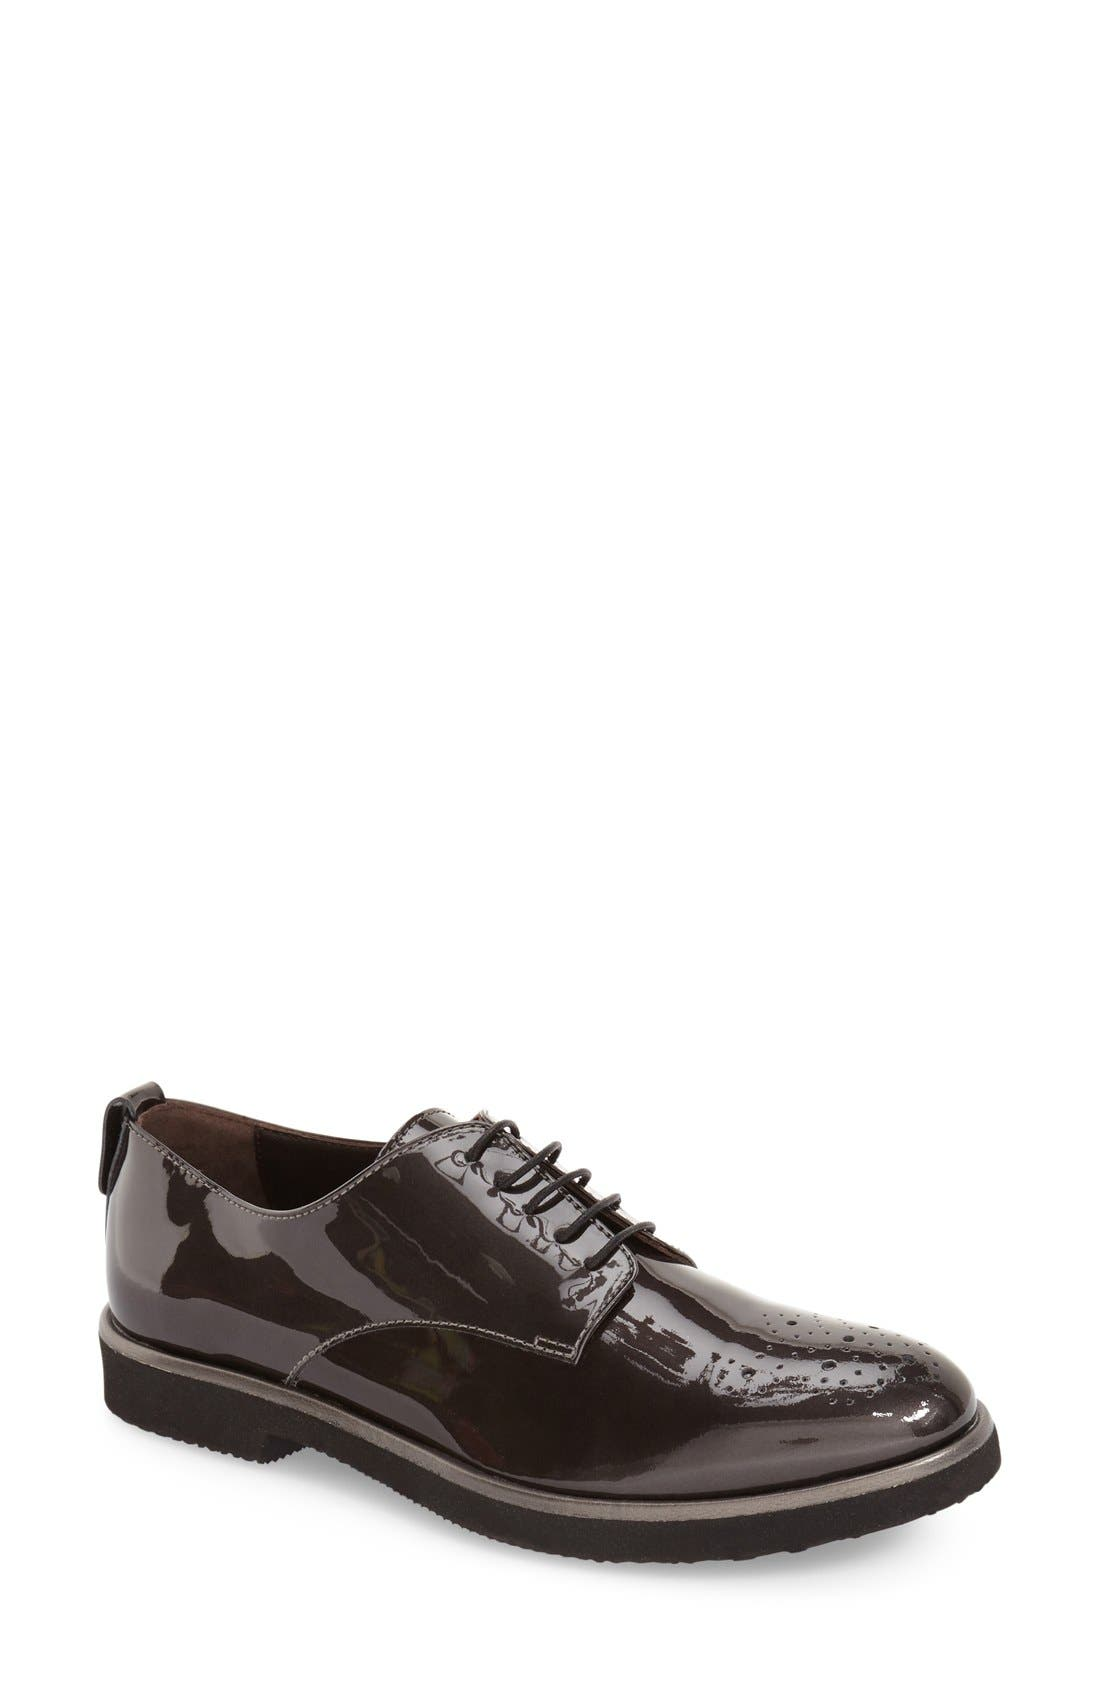 Alternate Image 1 Selected - AGL 'Parker' Oxford (Women)